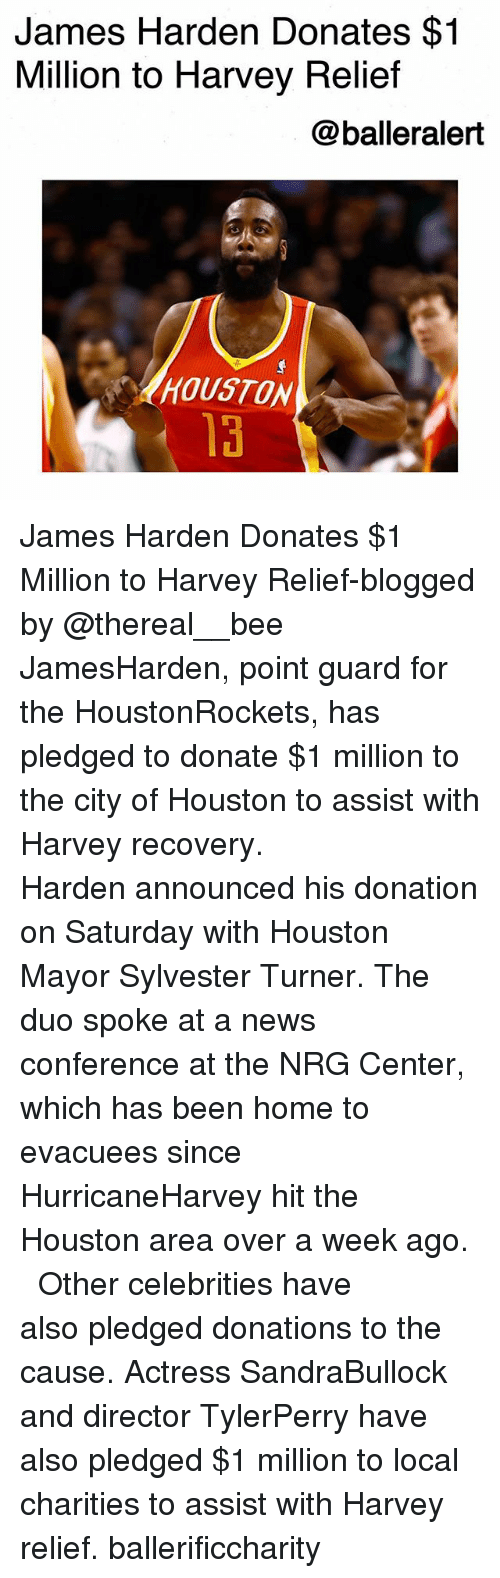 James Harden, Memes, and News: James Harden Donates $1  Million to Harvey Relief  @balleralert  HOUSTON  13 James Harden Donates $1 Million to Harvey Relief-blogged by @thereal__bee ⠀⠀⠀⠀⠀⠀⠀⠀⠀ ⠀⠀ JamesHarden, point guard for the HoustonRockets, has pledged to donate $1 million to the city of Houston to assist with Harvey recovery. ⠀⠀⠀⠀⠀⠀⠀⠀⠀ ⠀⠀ Harden announced his donation on Saturday with Houston Mayor Sylvester Turner. The duo spoke at a news conference at the NRG Center, which has been home to evacuees since HurricaneHarvey hit the Houston area over a week ago. ⠀⠀⠀⠀⠀⠀⠀⠀⠀ ⠀⠀ Other celebrities have also pledged donations to the cause. Actress SandraBullock and director TylerPerry have also pledged $1 million to local charities to assist with Harvey relief. ballerificcharity